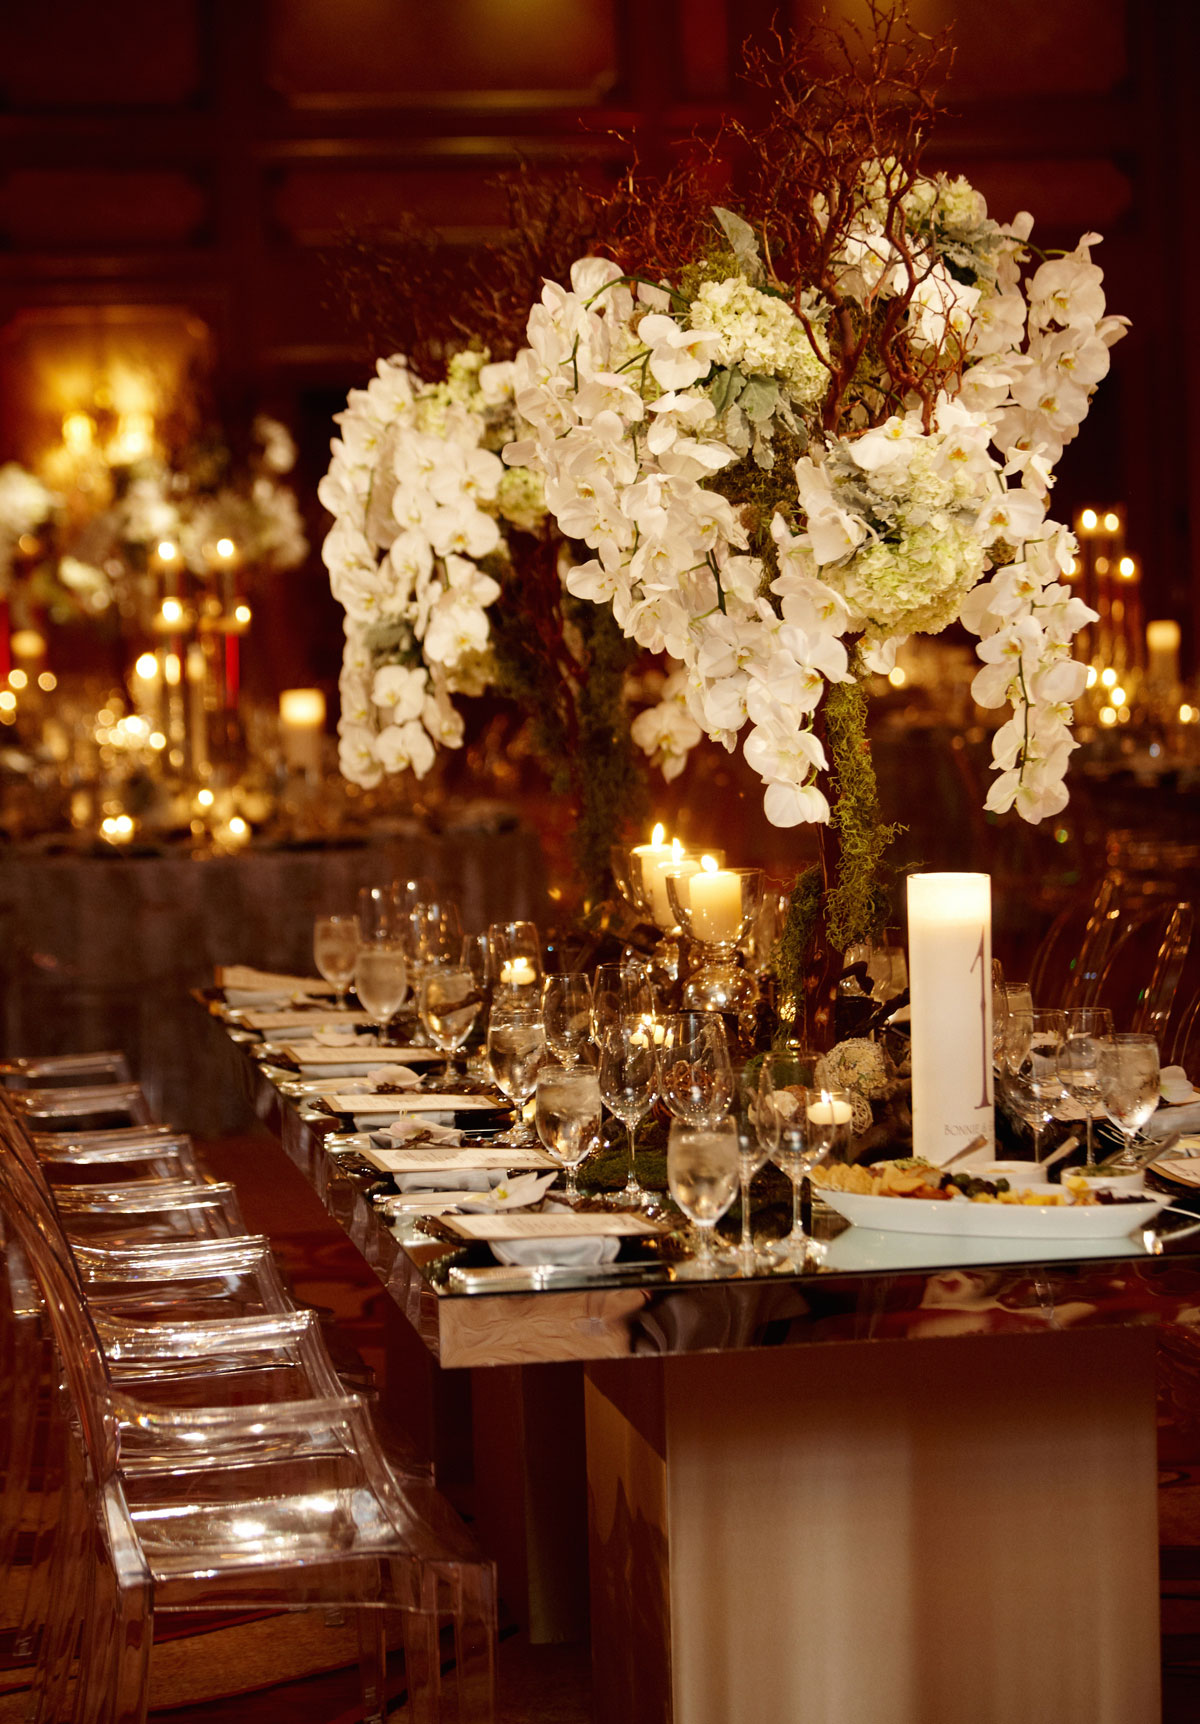 Rustic Wedding Centerpieces To Inspire Your Big Day Inside Weddings